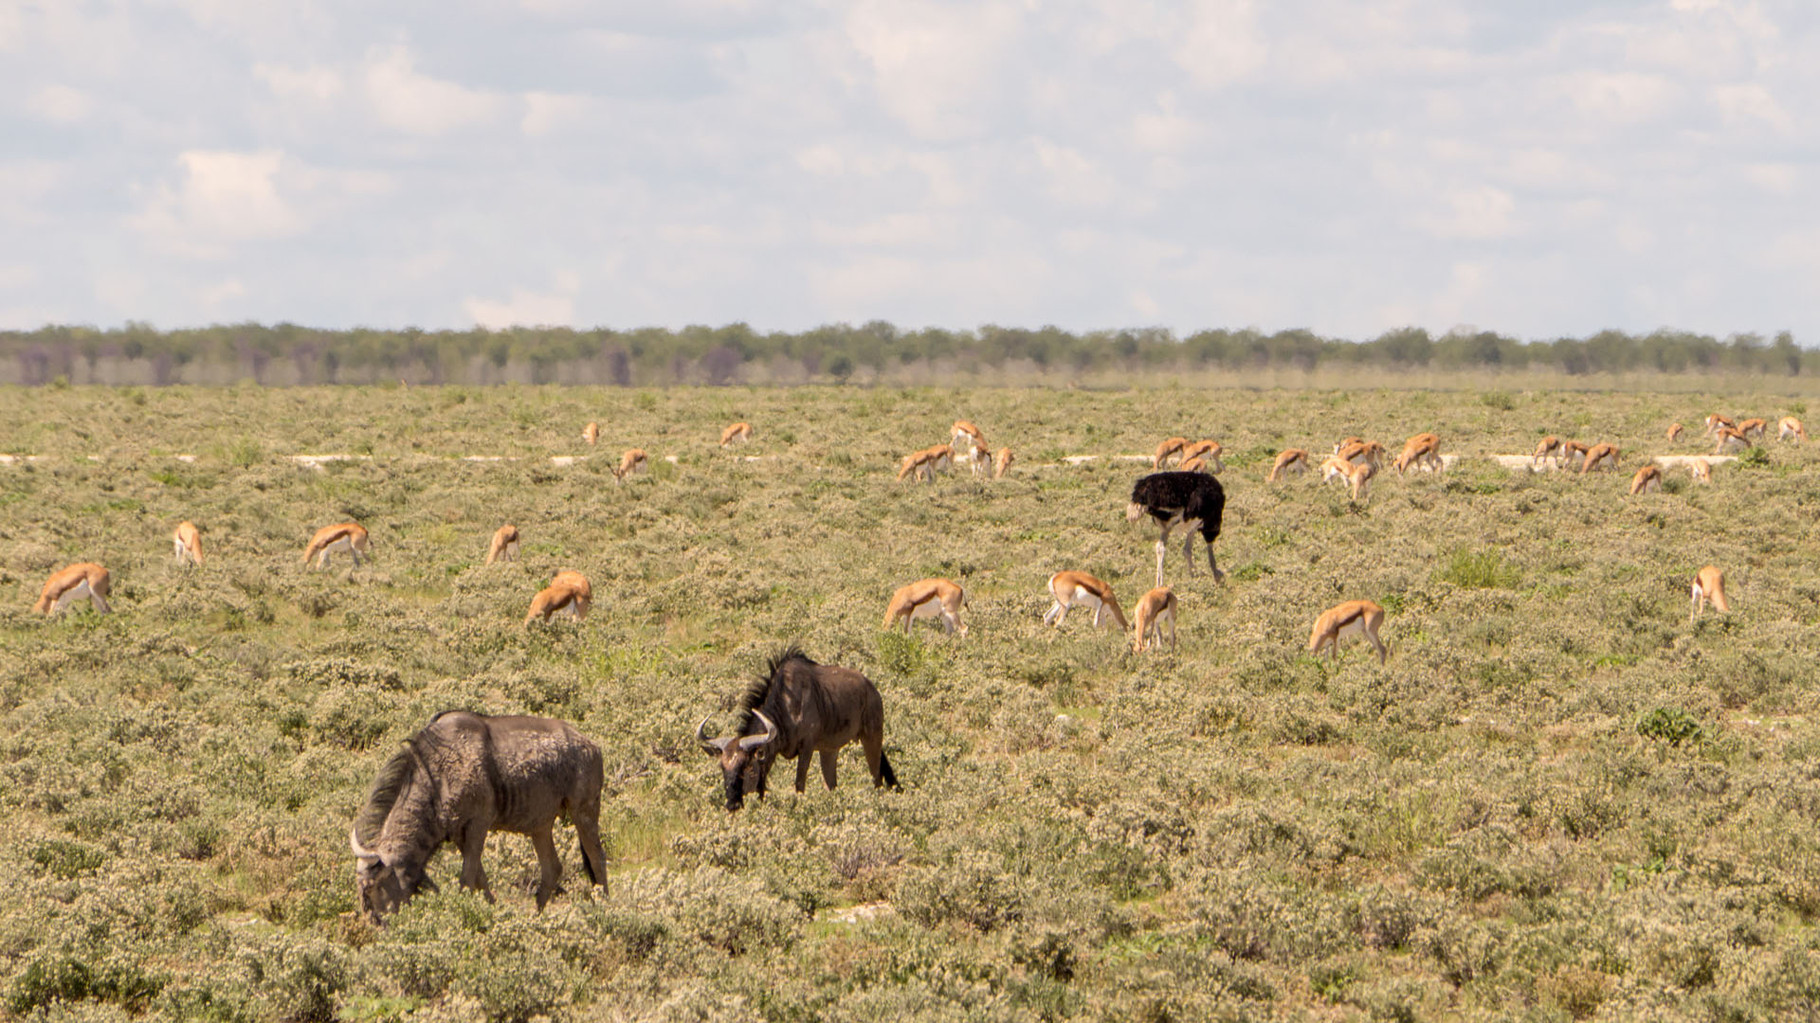 Wildebeest and impalas, Etosha National park